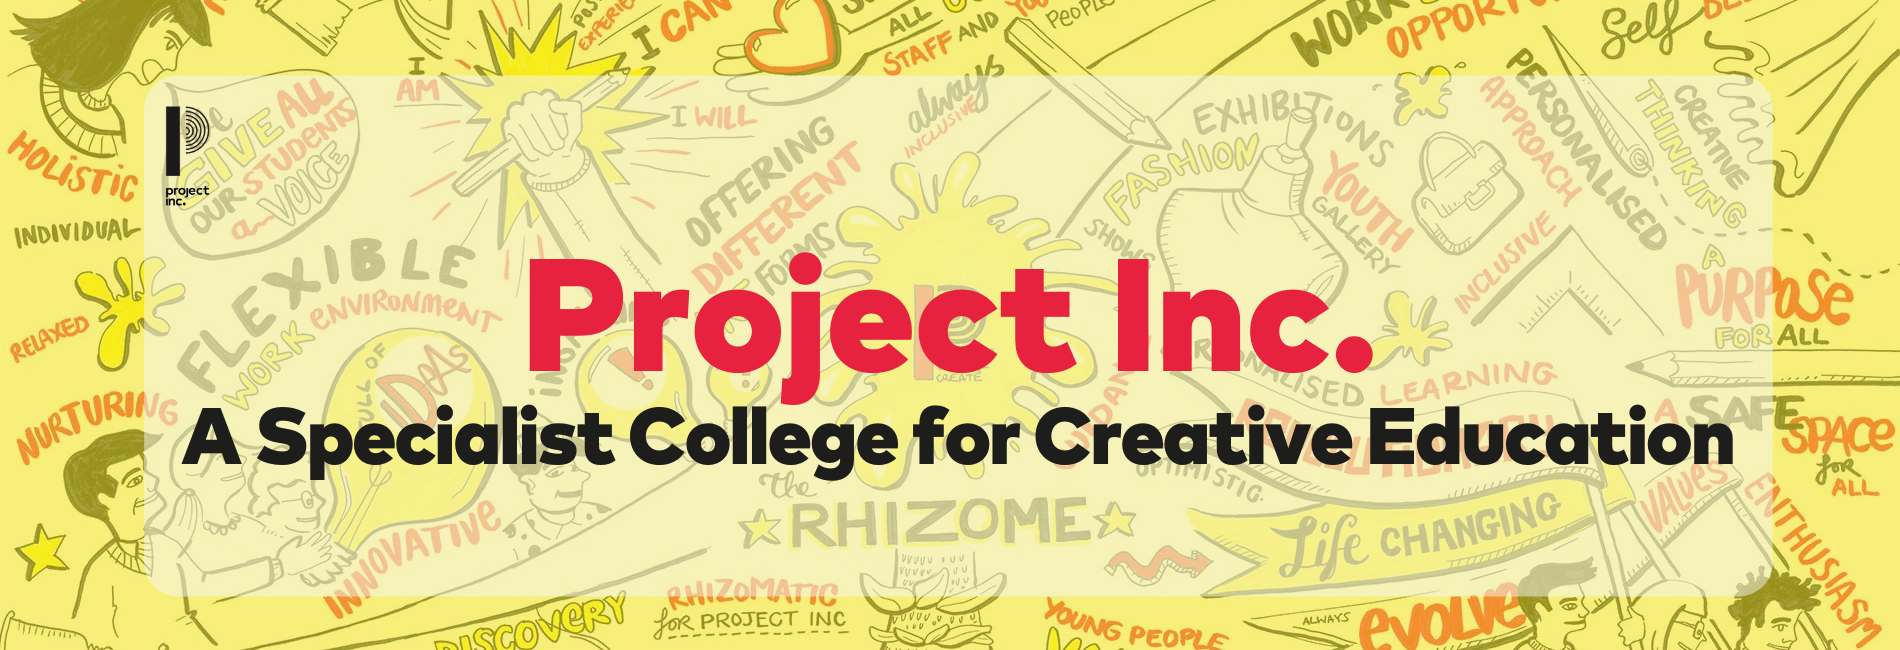 A Specialist College for Creative Education